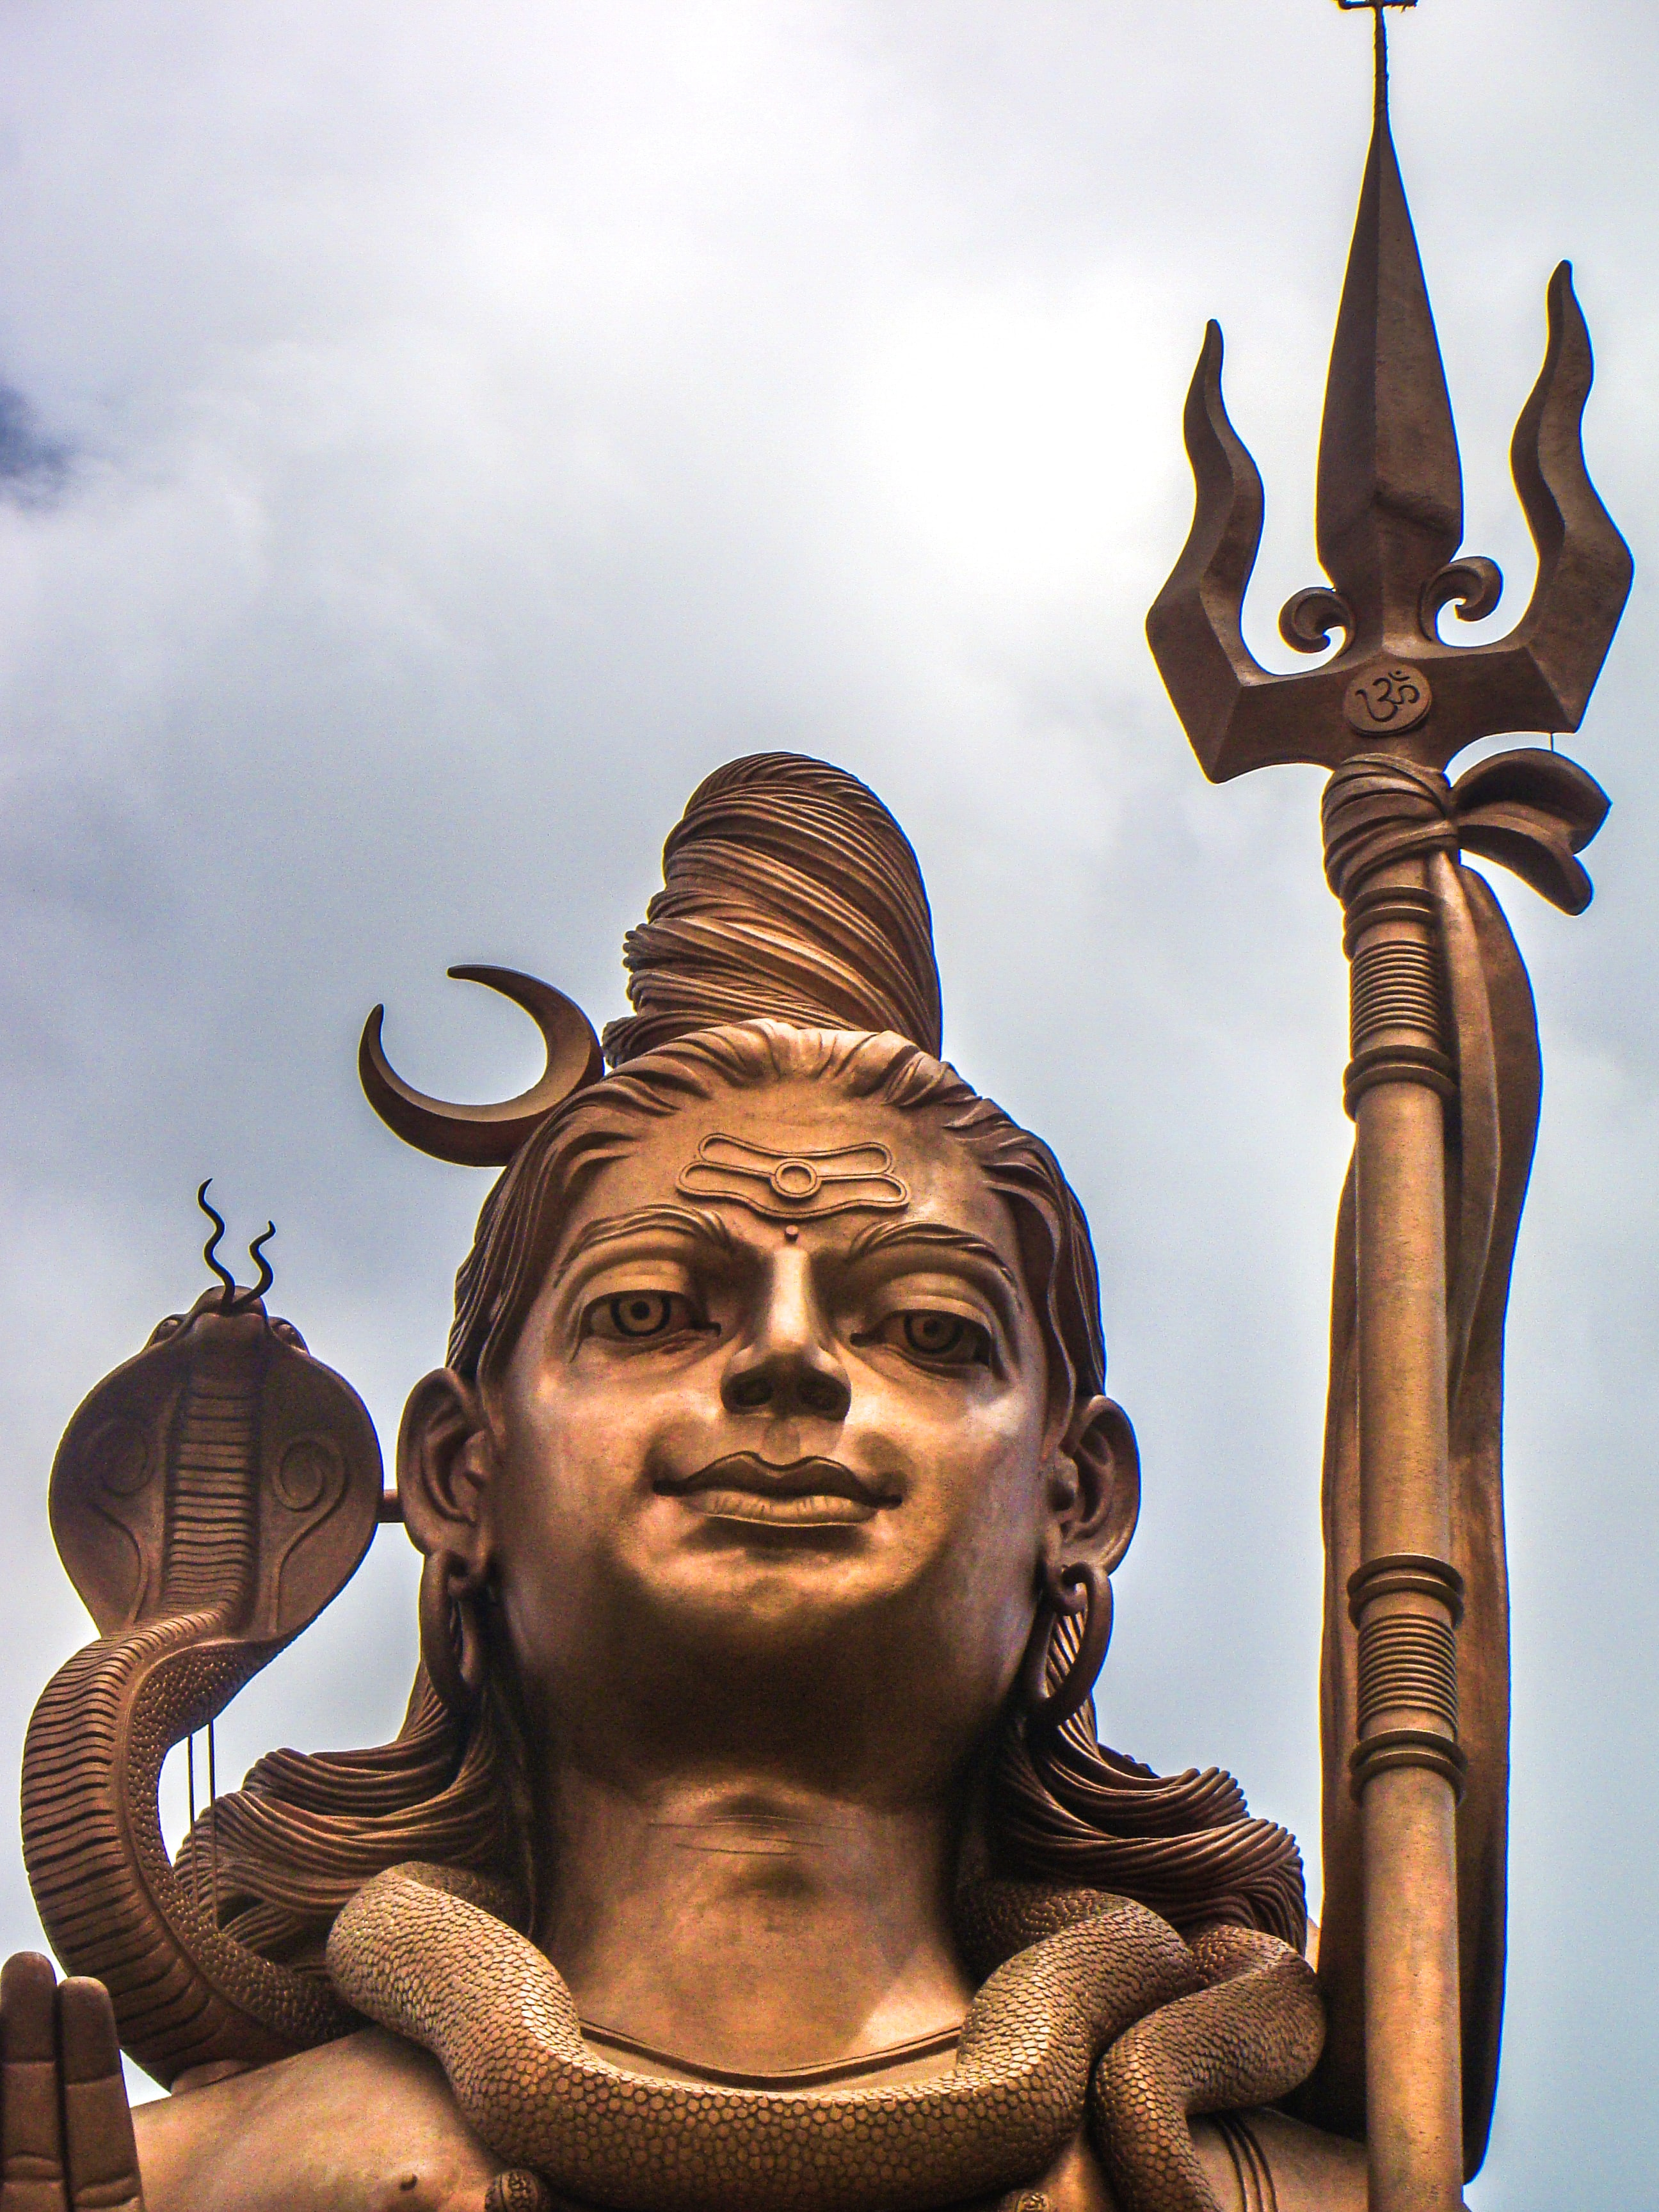 100 Mahadev Pictures Hd Download Free Images On Unsplash